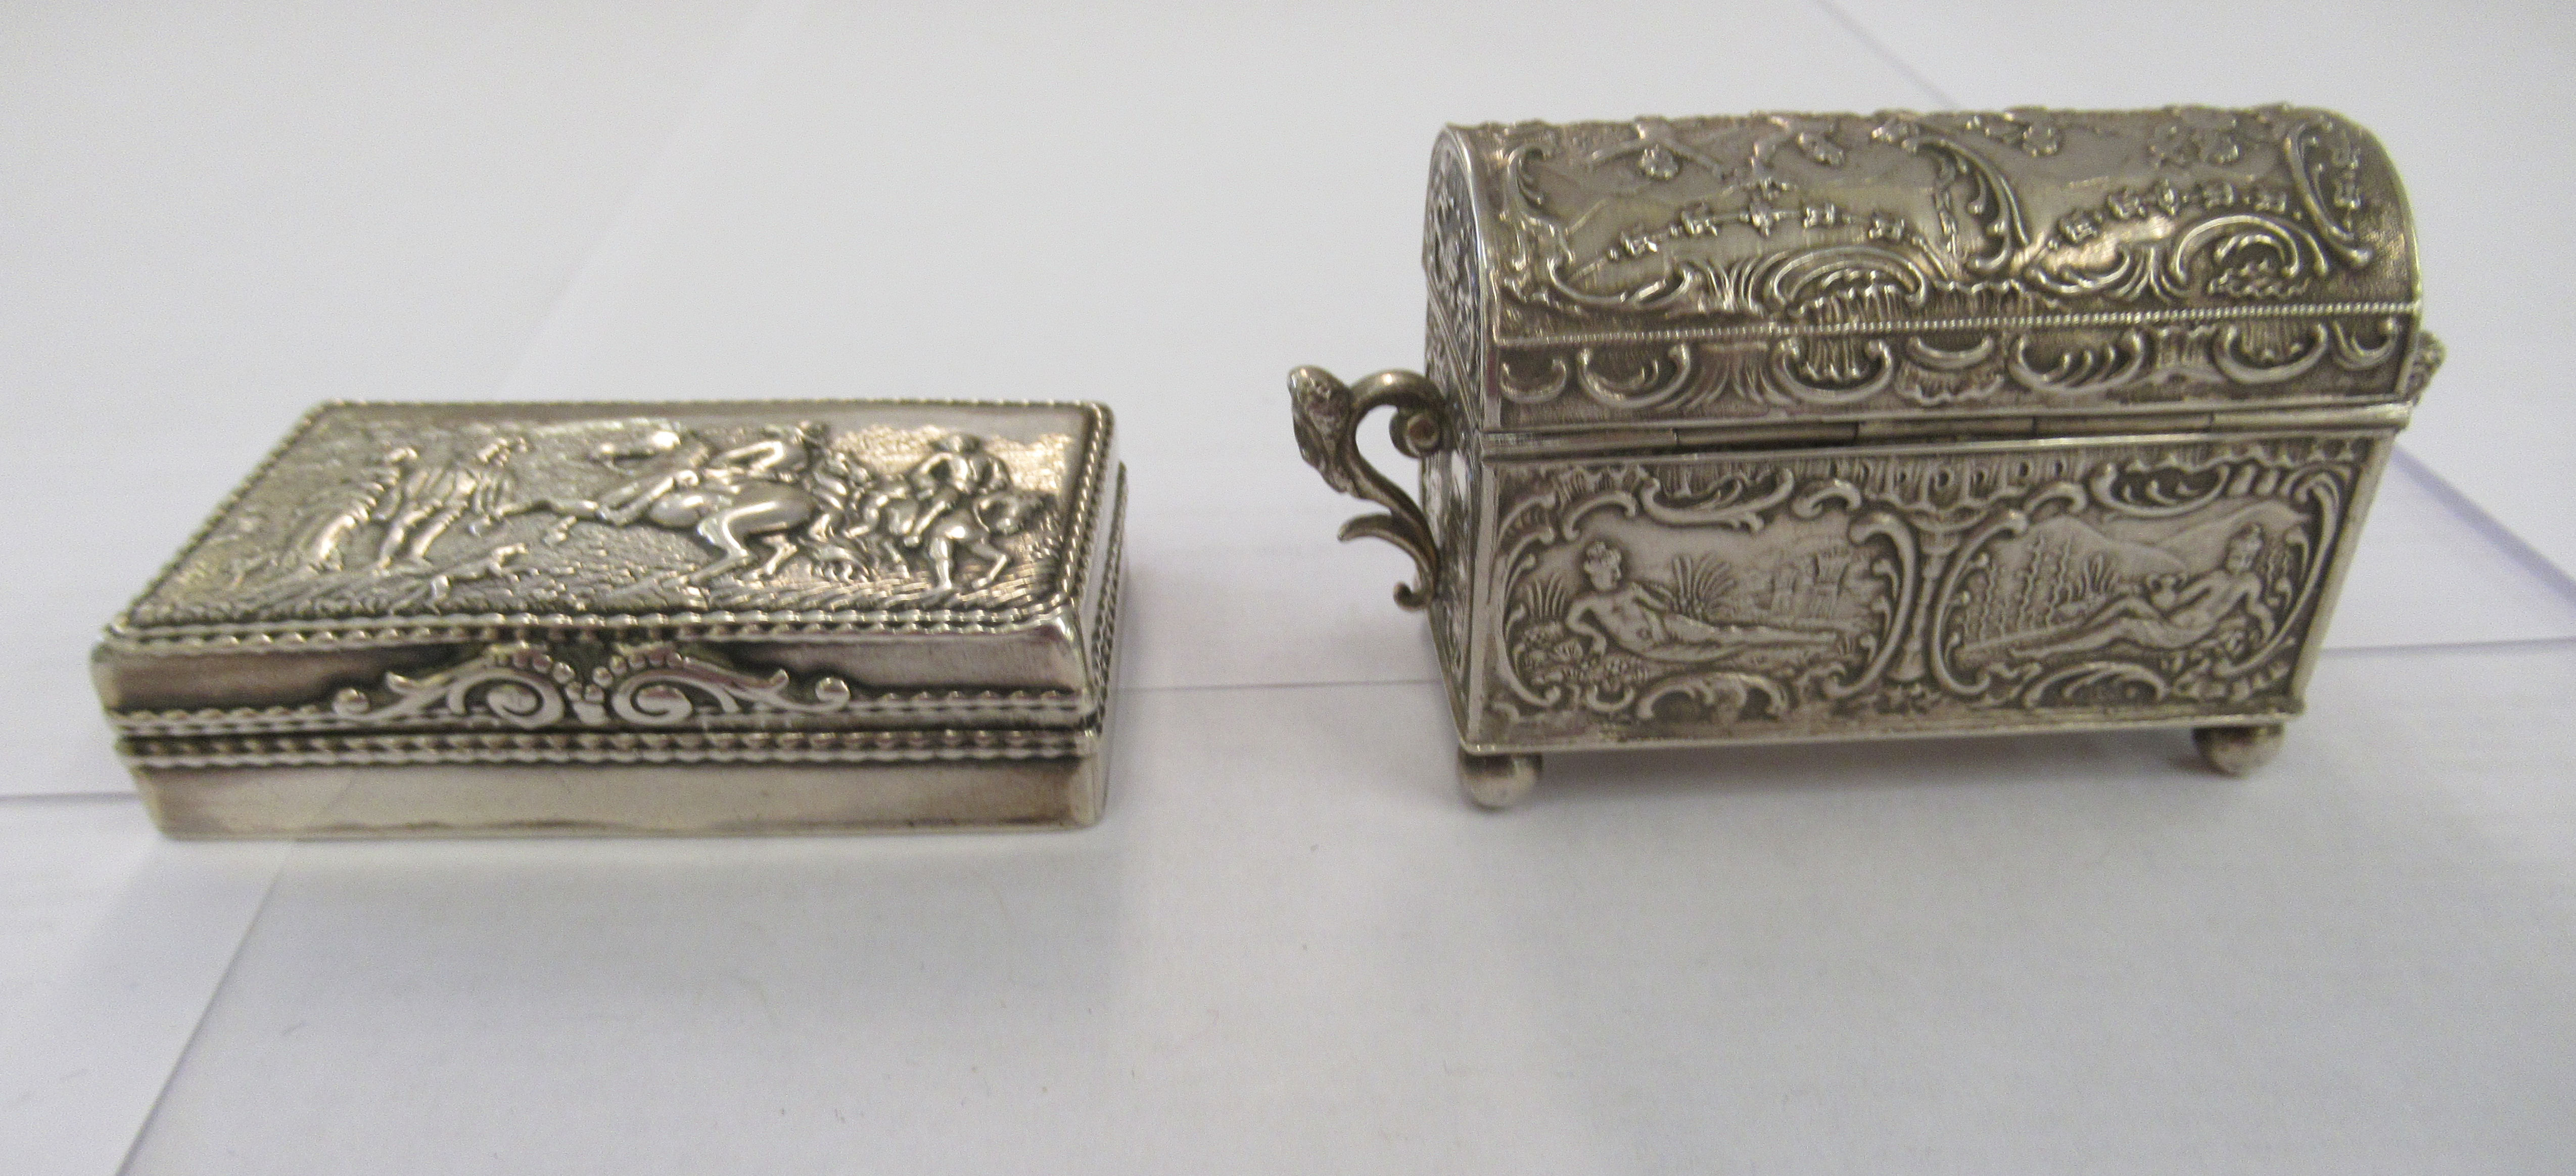 Two early 20thC Continental silver coloured metal items, viz. a domed twin handled, casket deign